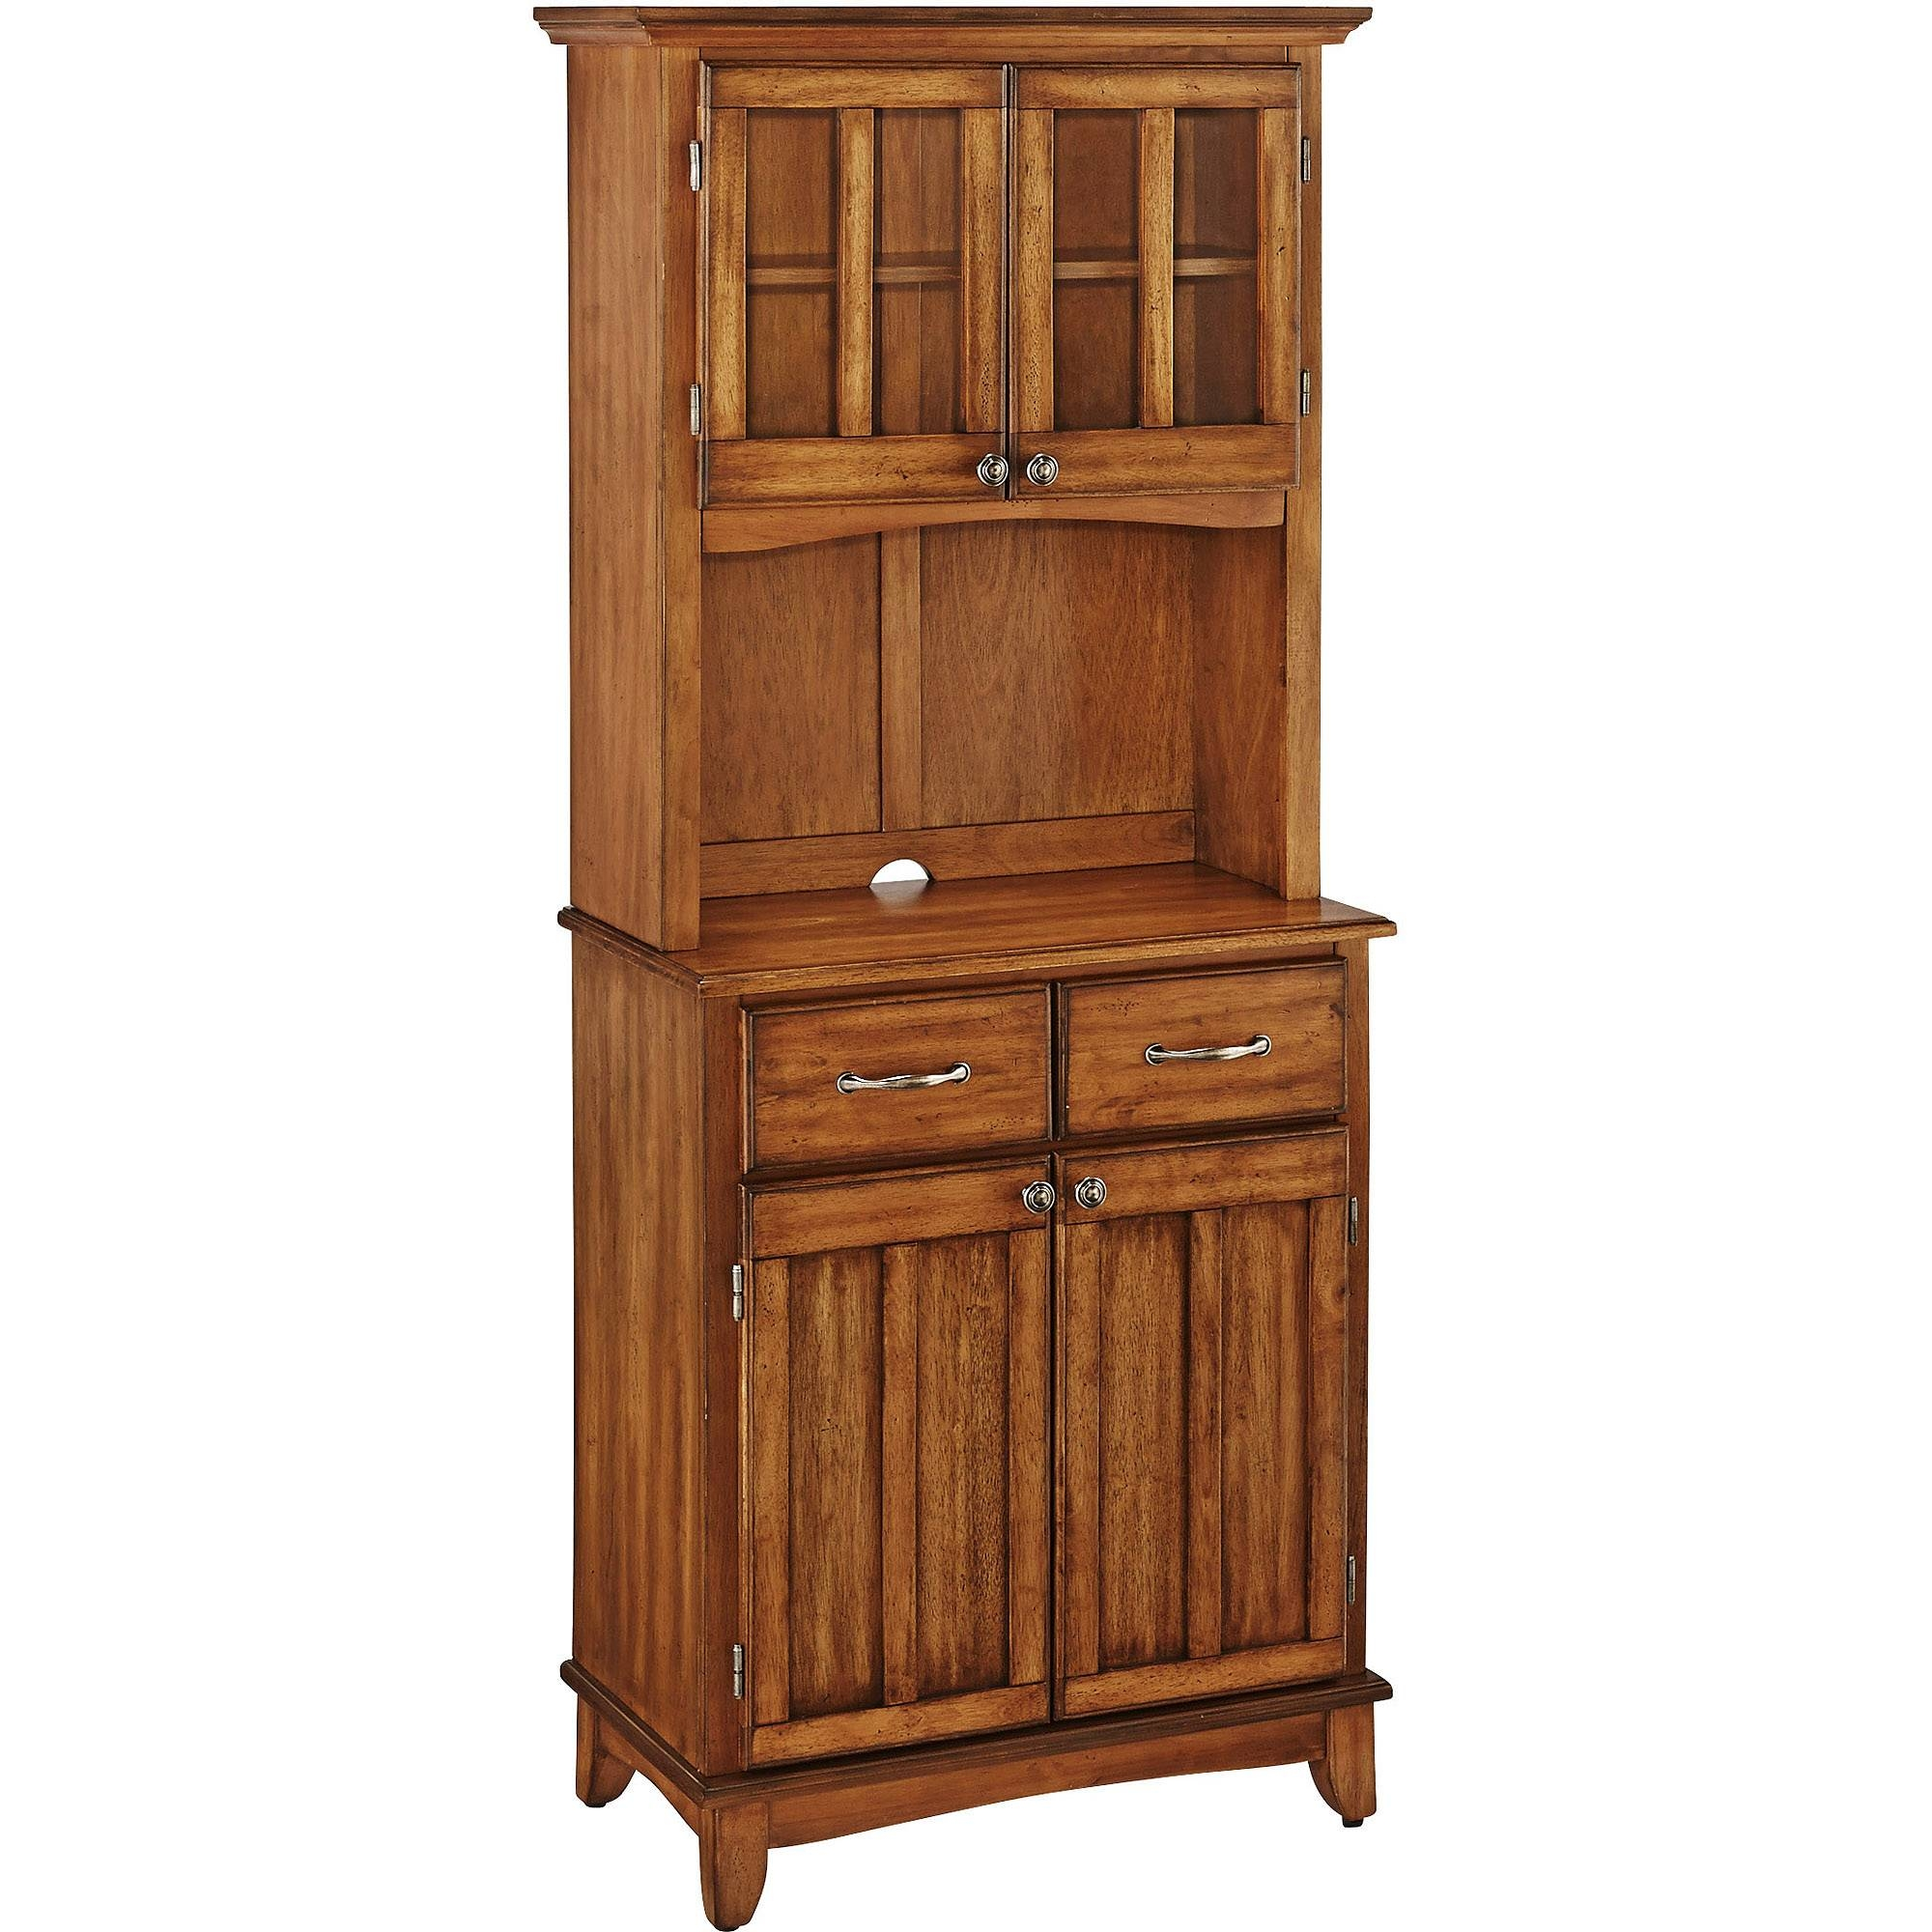 China Cabinet : China Cabinet Sideboards Awesomeuffetsuffet Target For Small Sideboard Cabinets (#5 of 15)